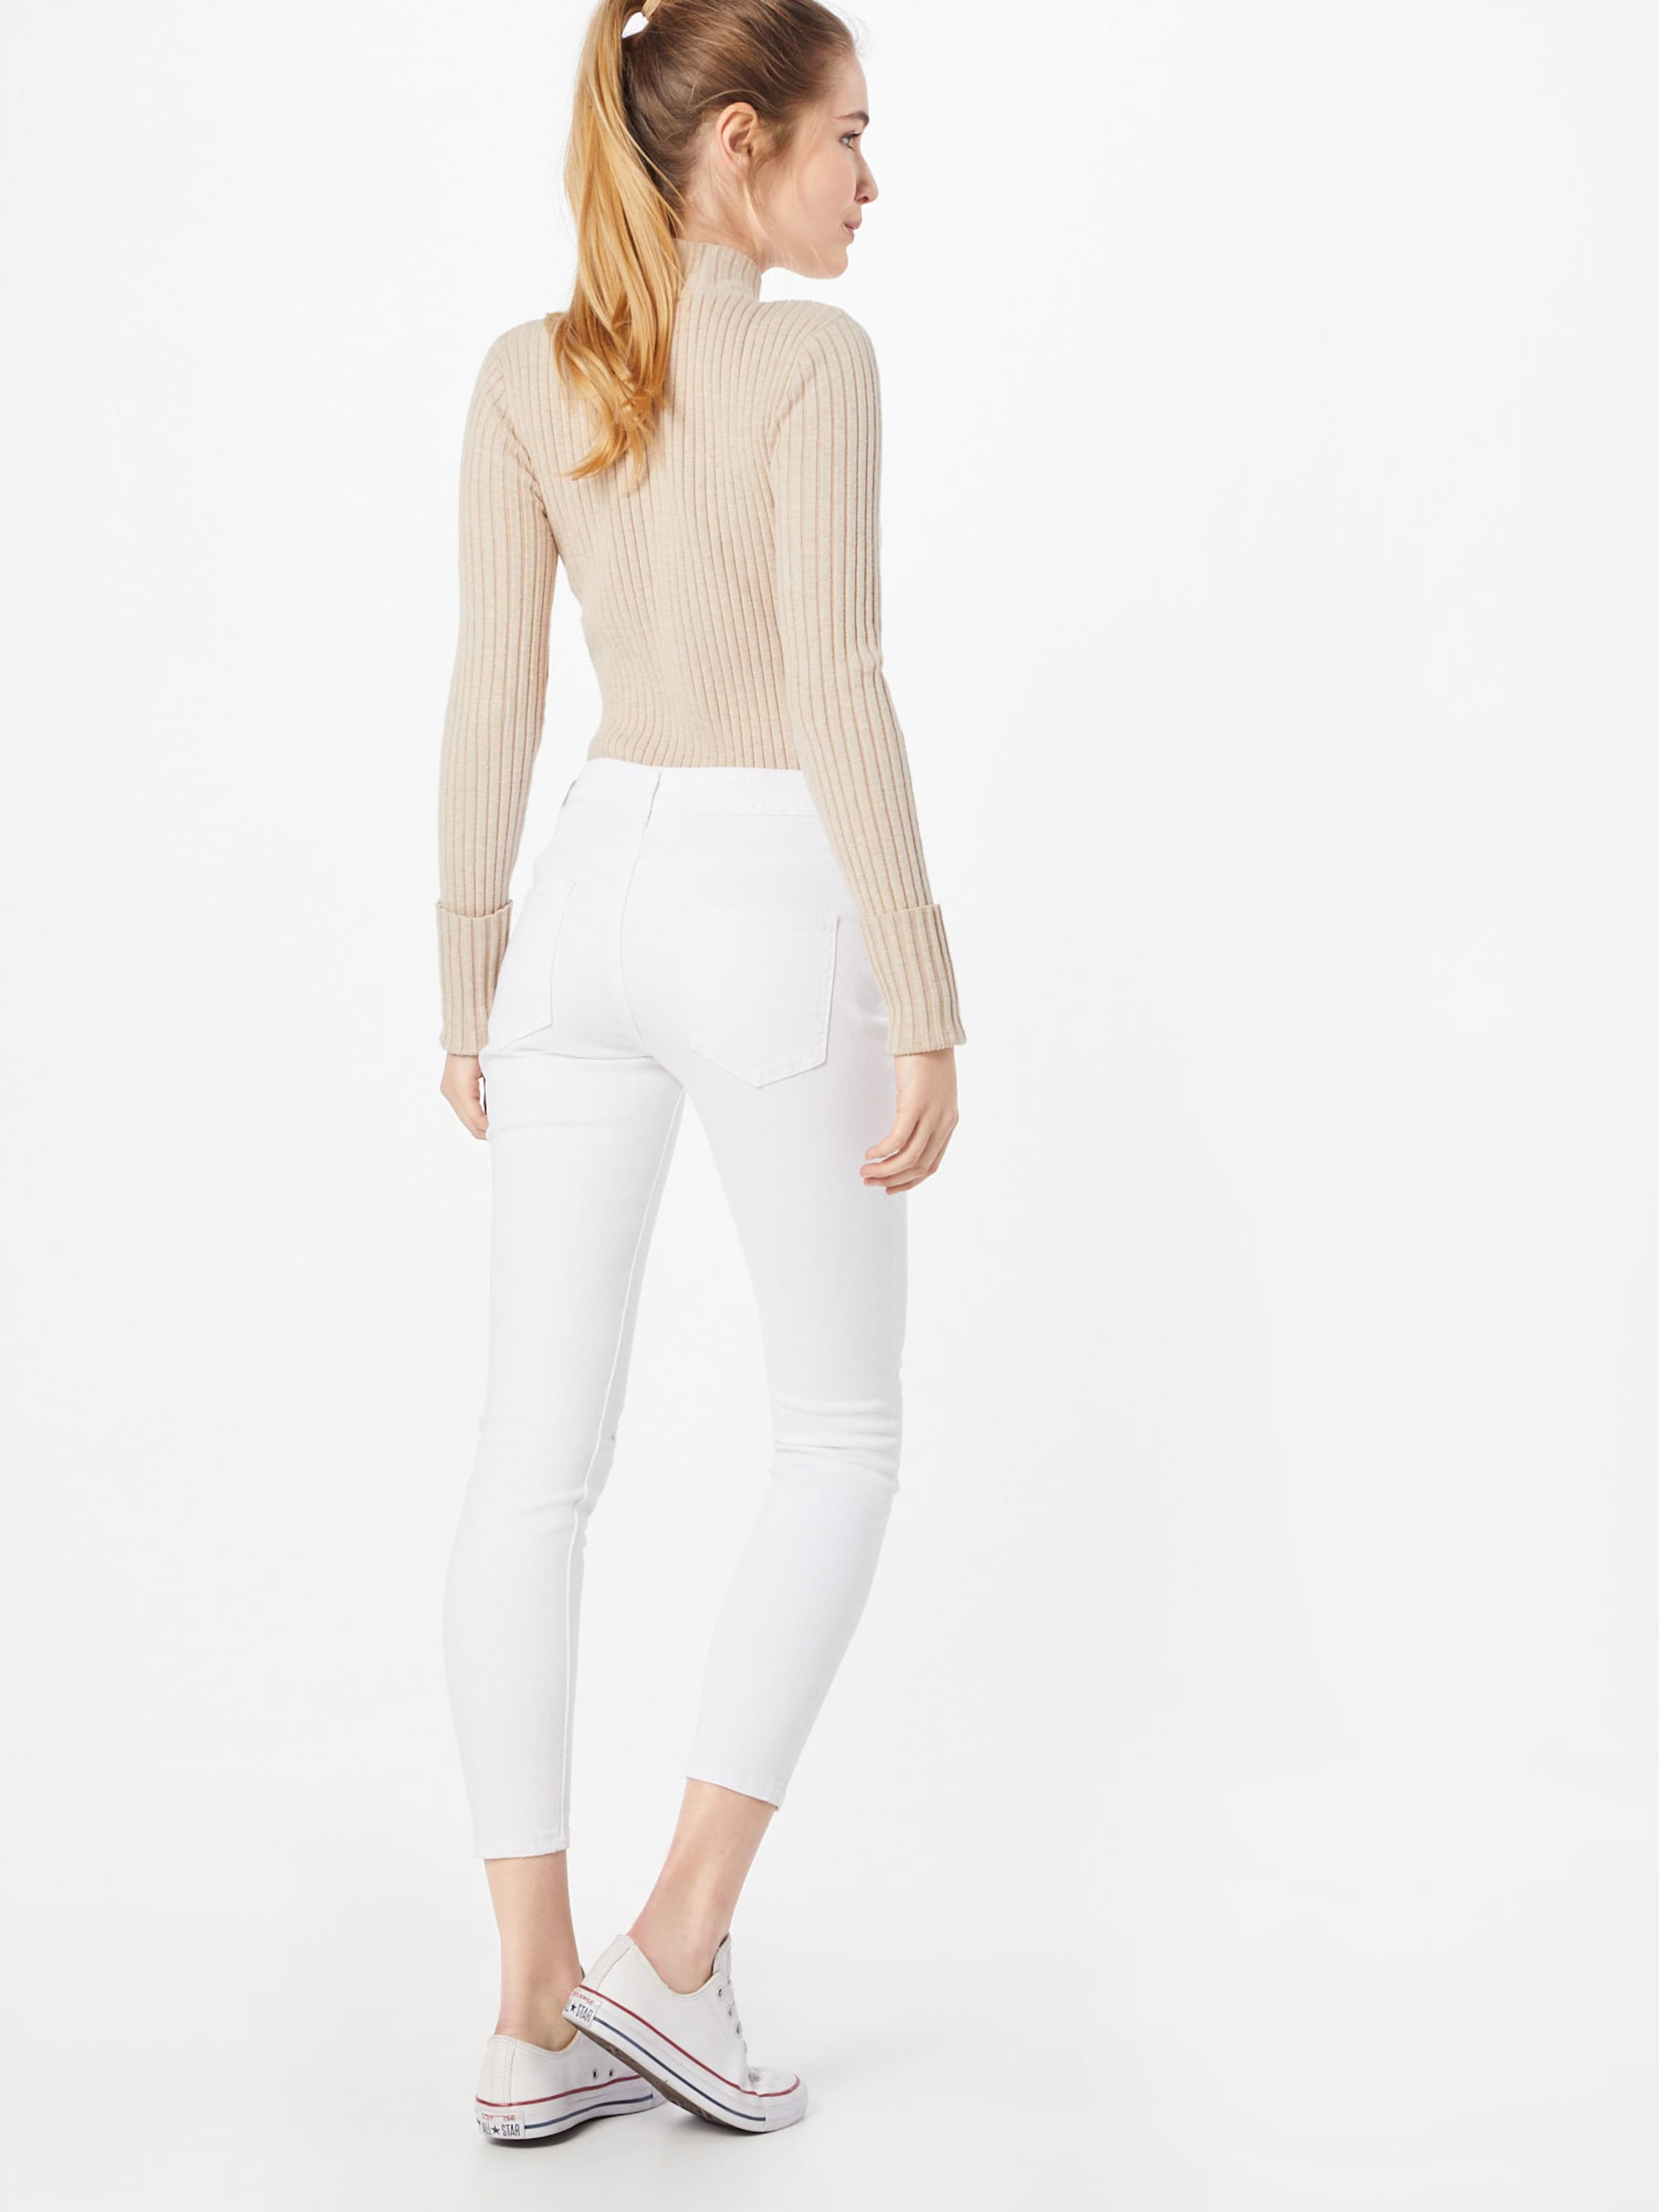 Ink Lost Rip' In Denim Rise Jeans White Skinny 'mid 2IWE9DH